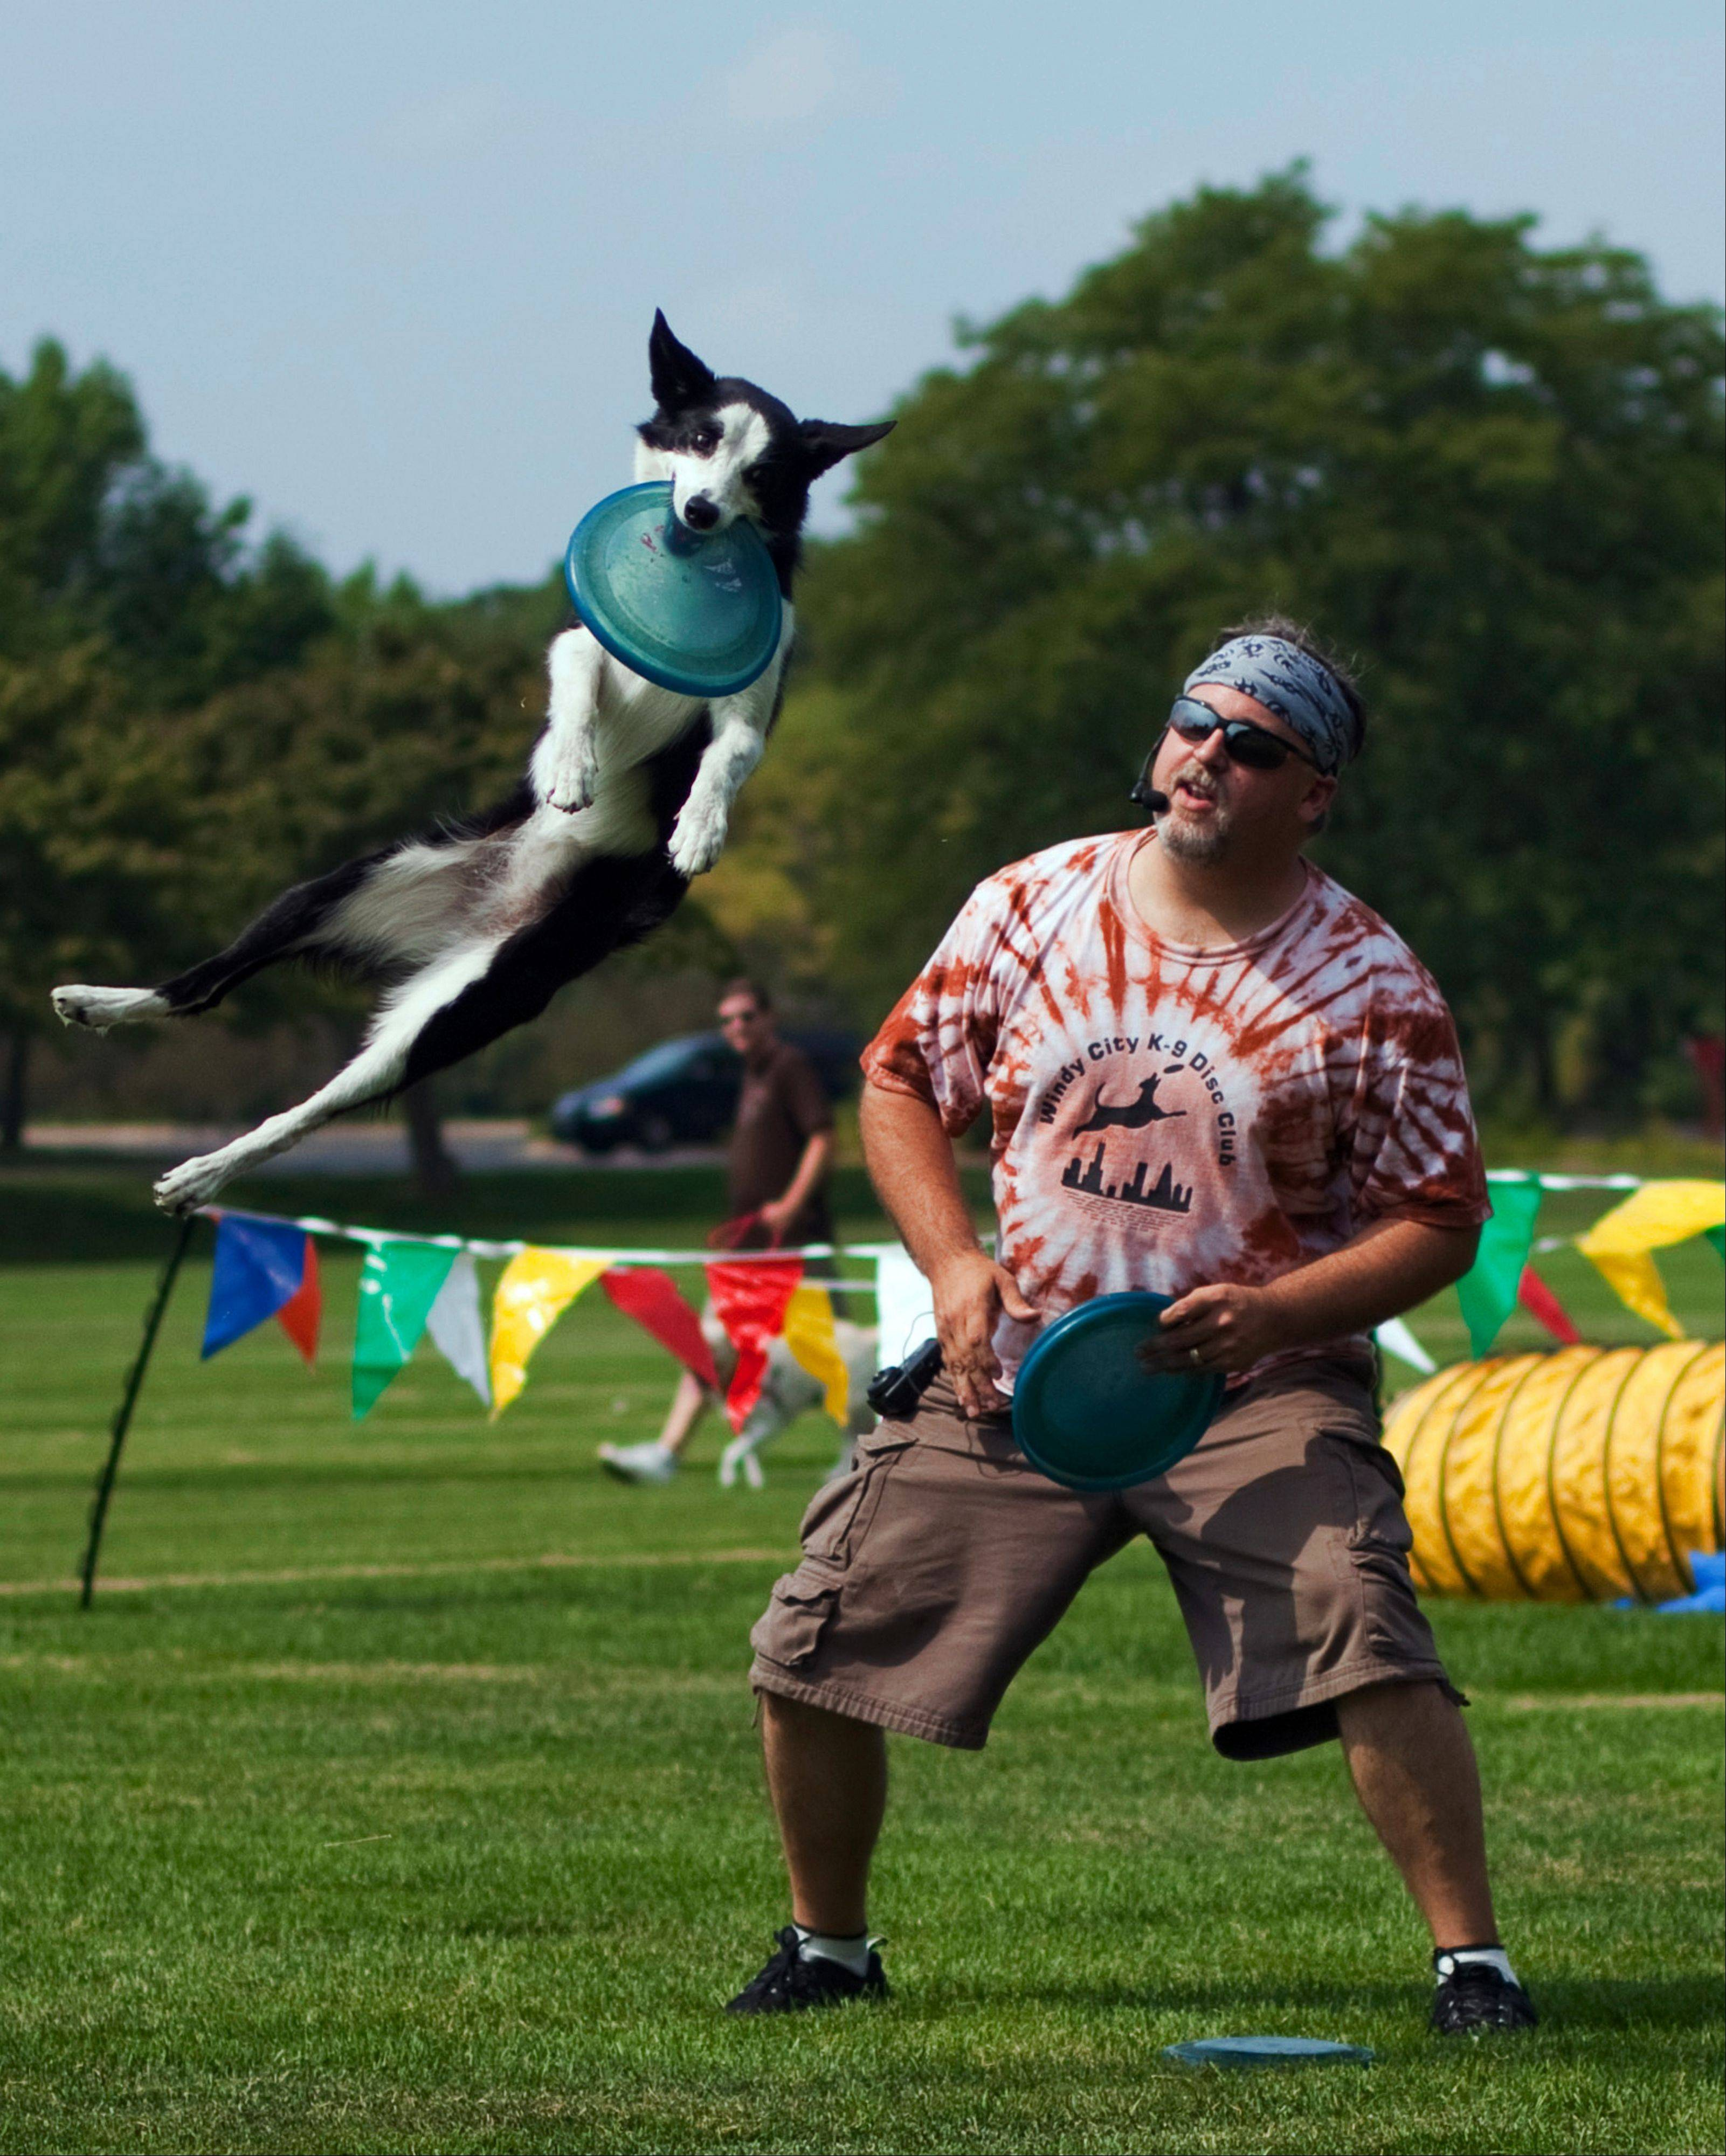 The Windy City K-9 Disc Club is one of the groups giving demonstrations at the Dog Days event at Wheaton's Cantigny Park.